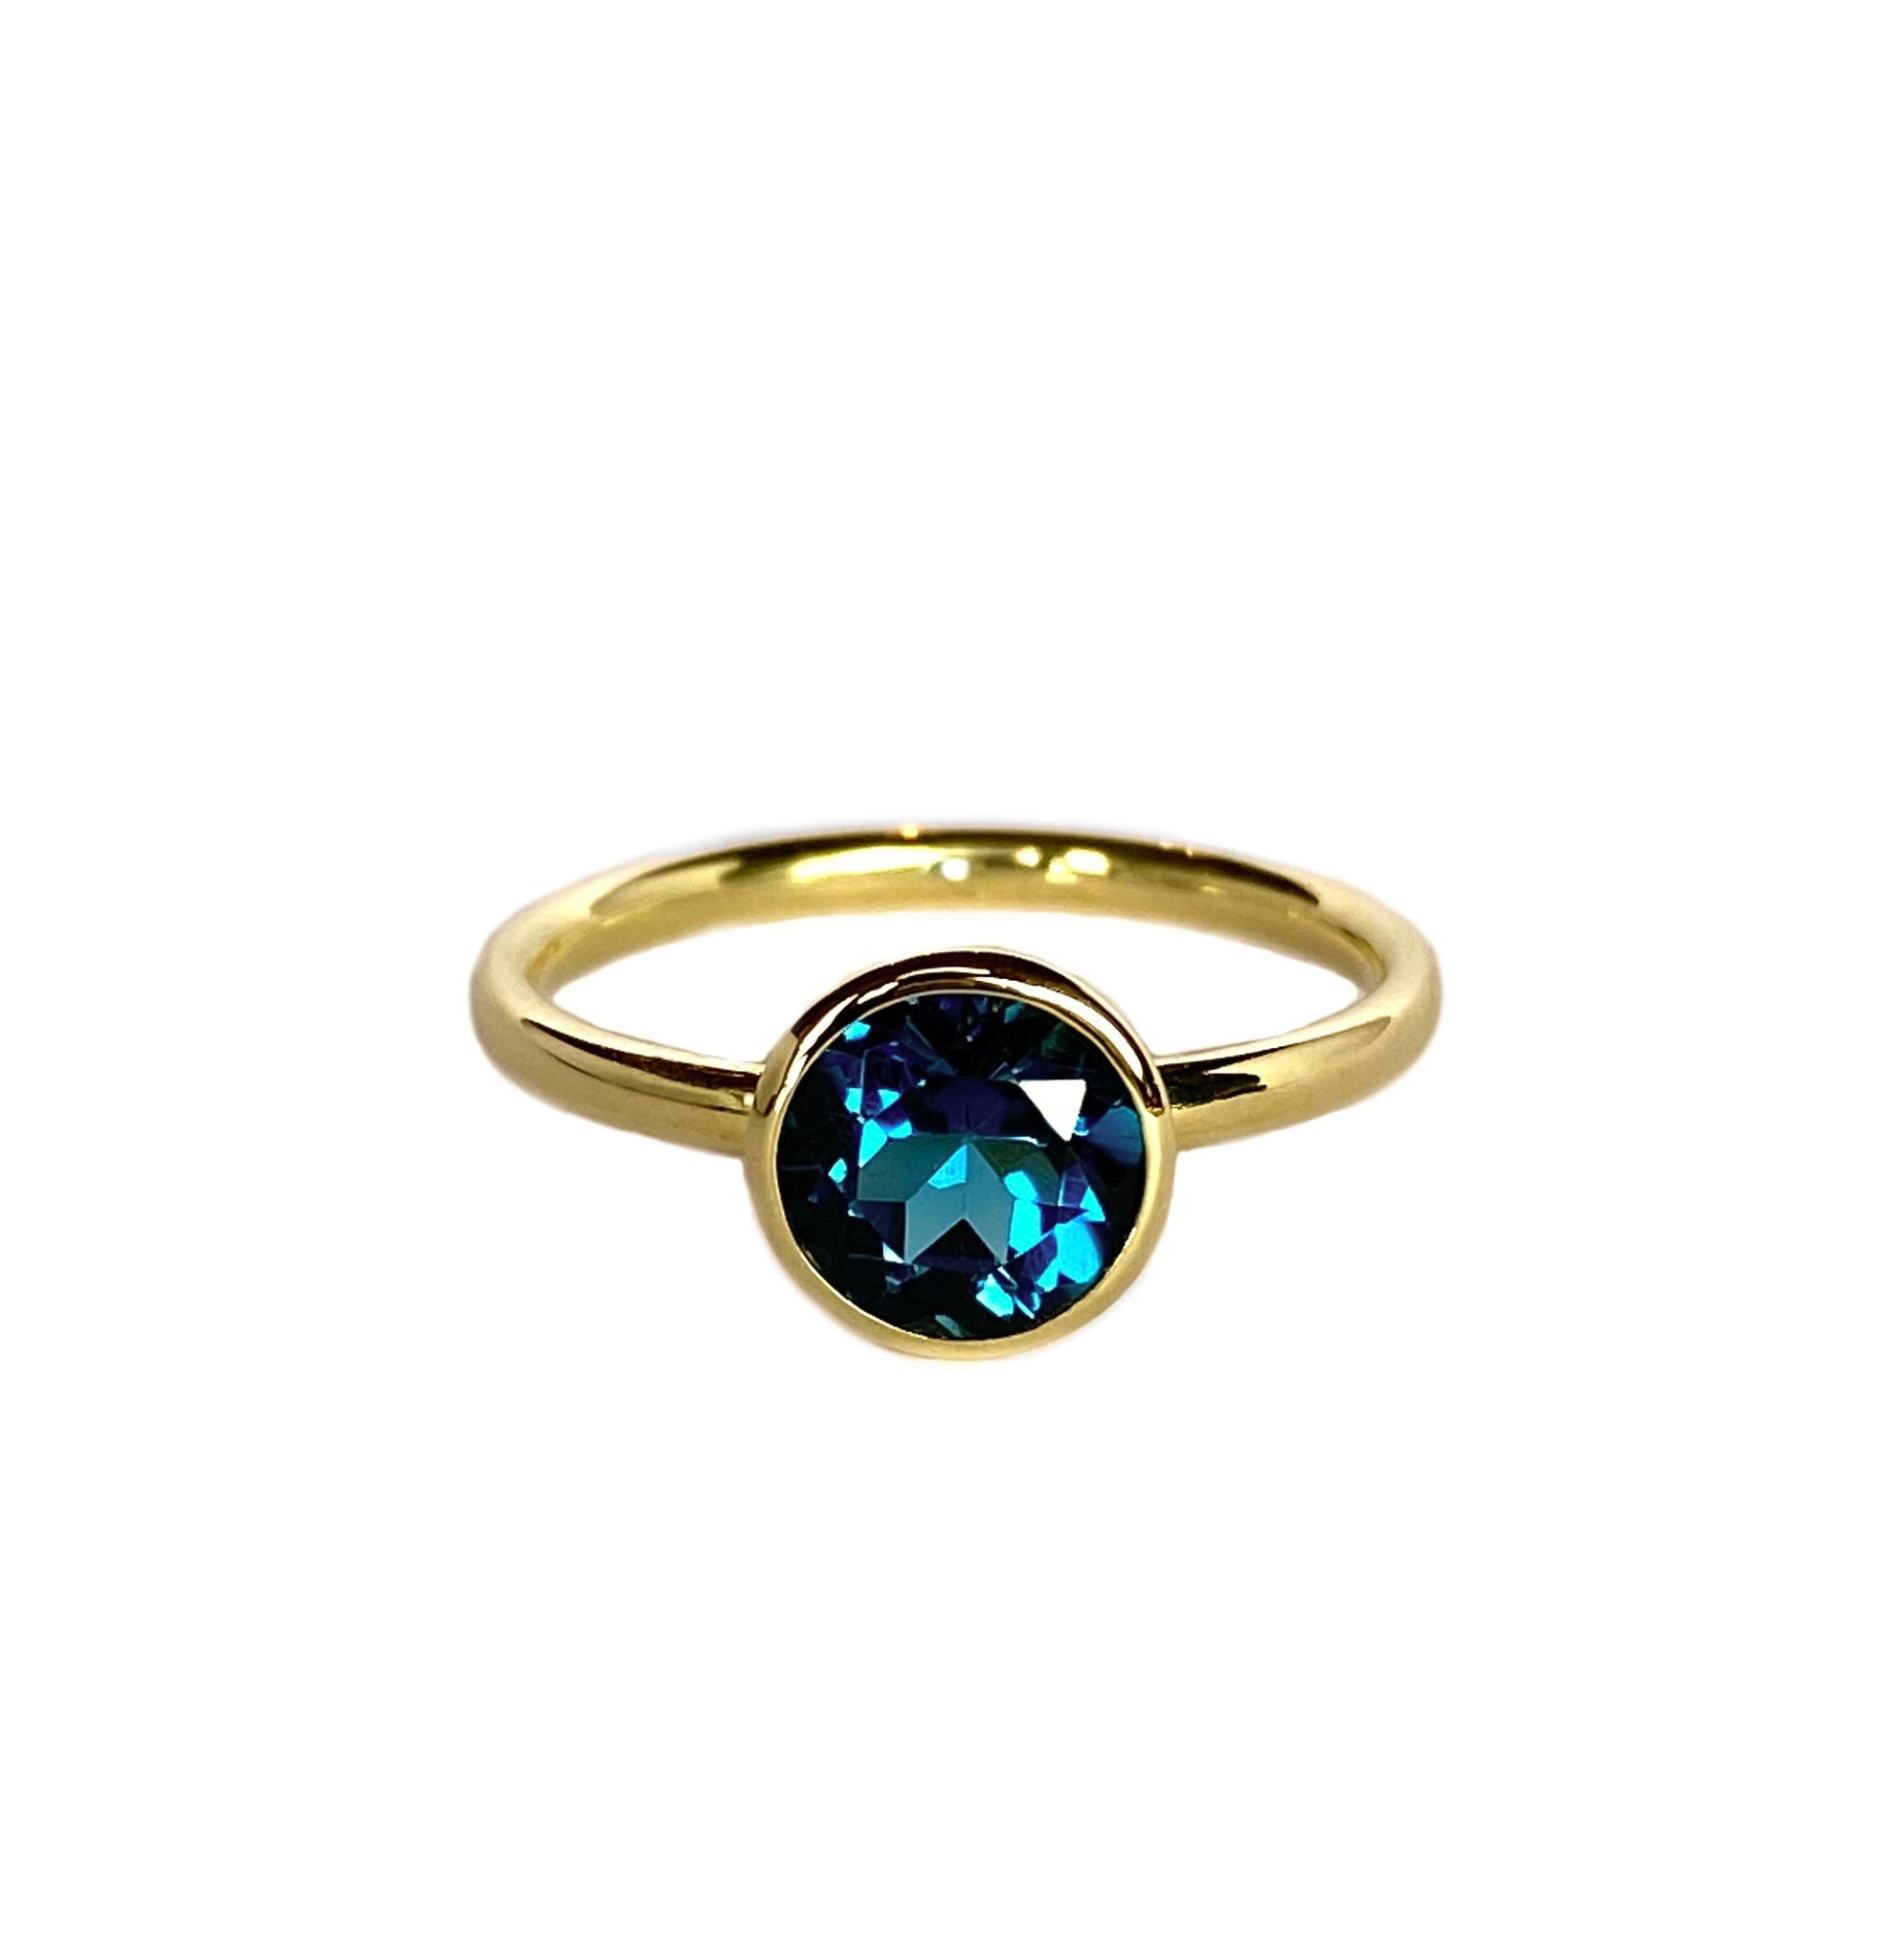 14k yellow gold ring set with a london blue topaz